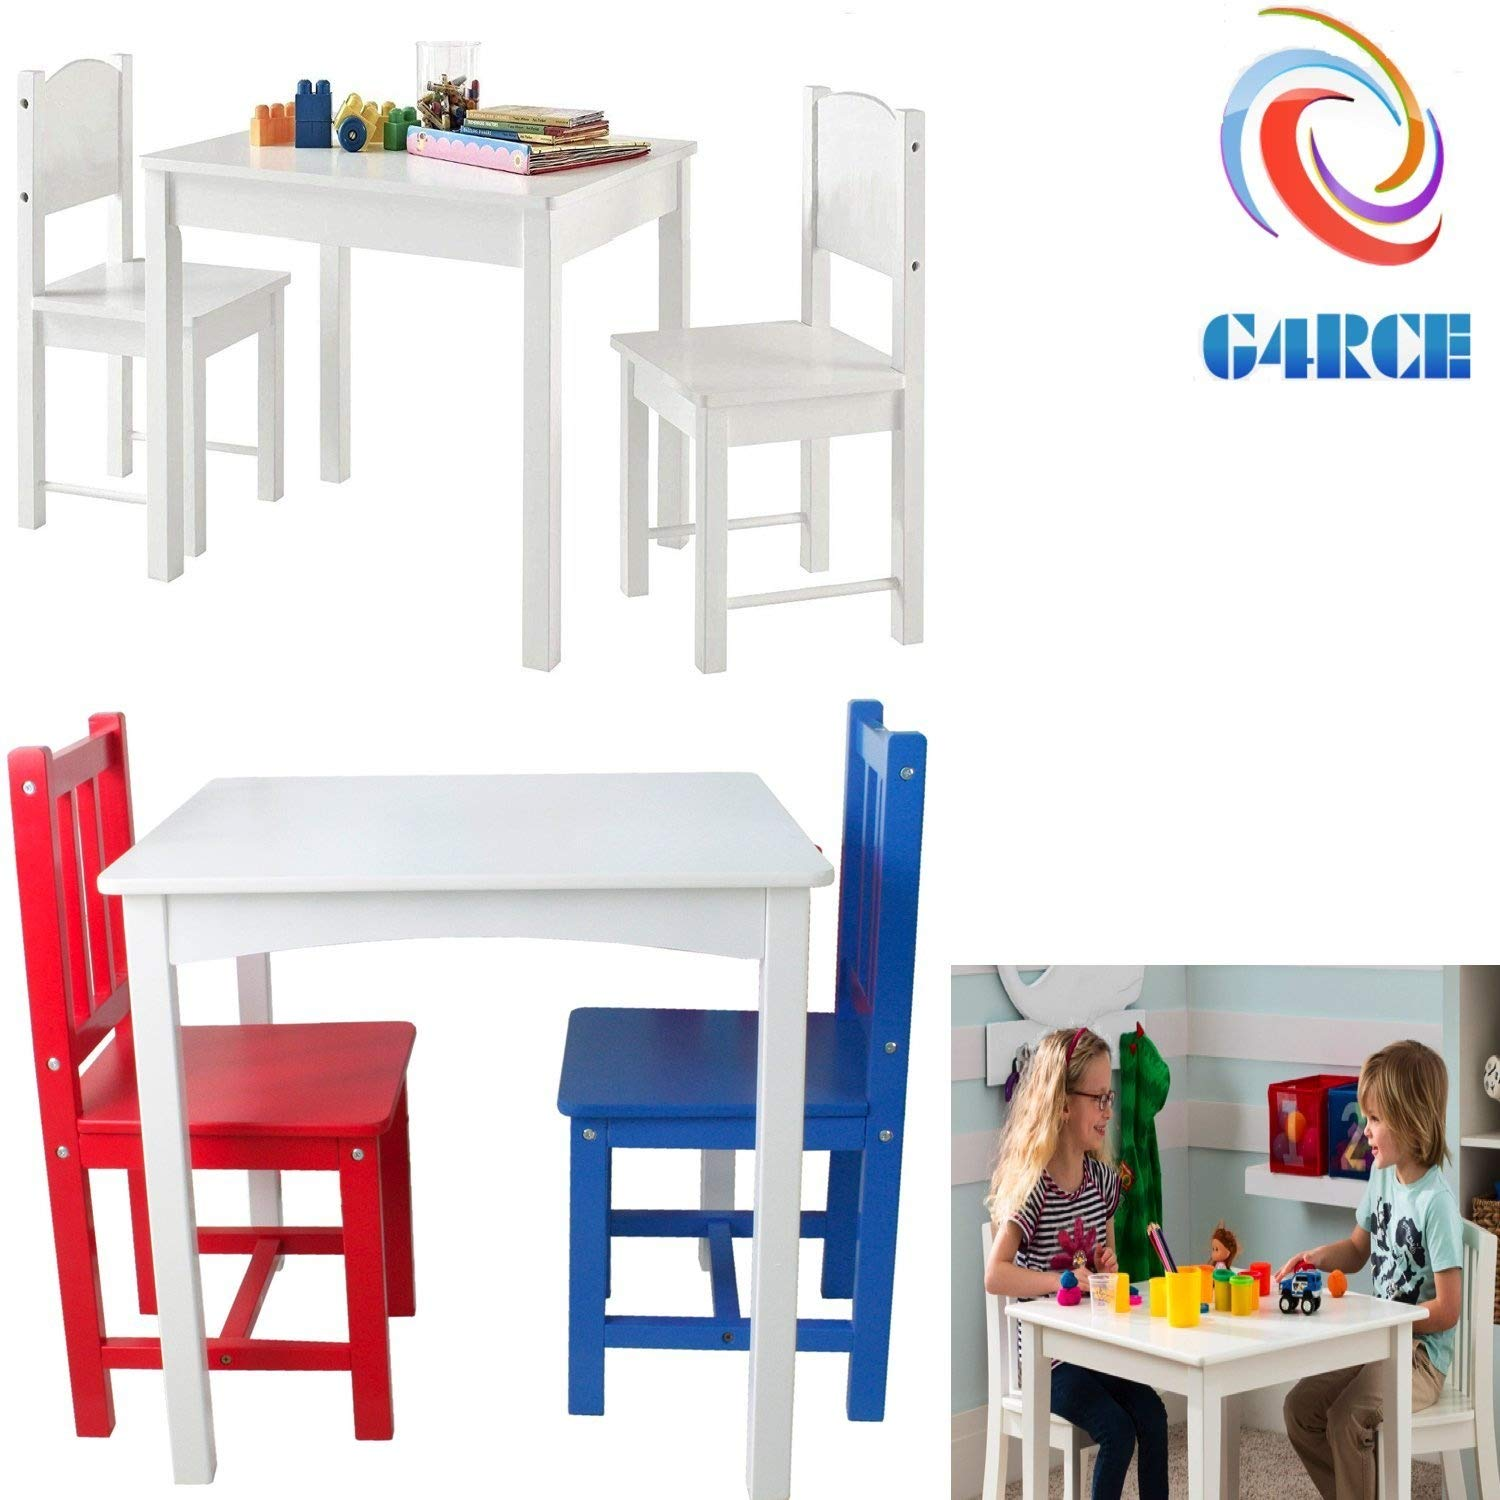 G4RCE® Childrens Kids Wooden White Table and 2 Chairs Nursery Sets Indoor Use Unisex Best Gift For Birthday Xmas (Colour Table & Chair)